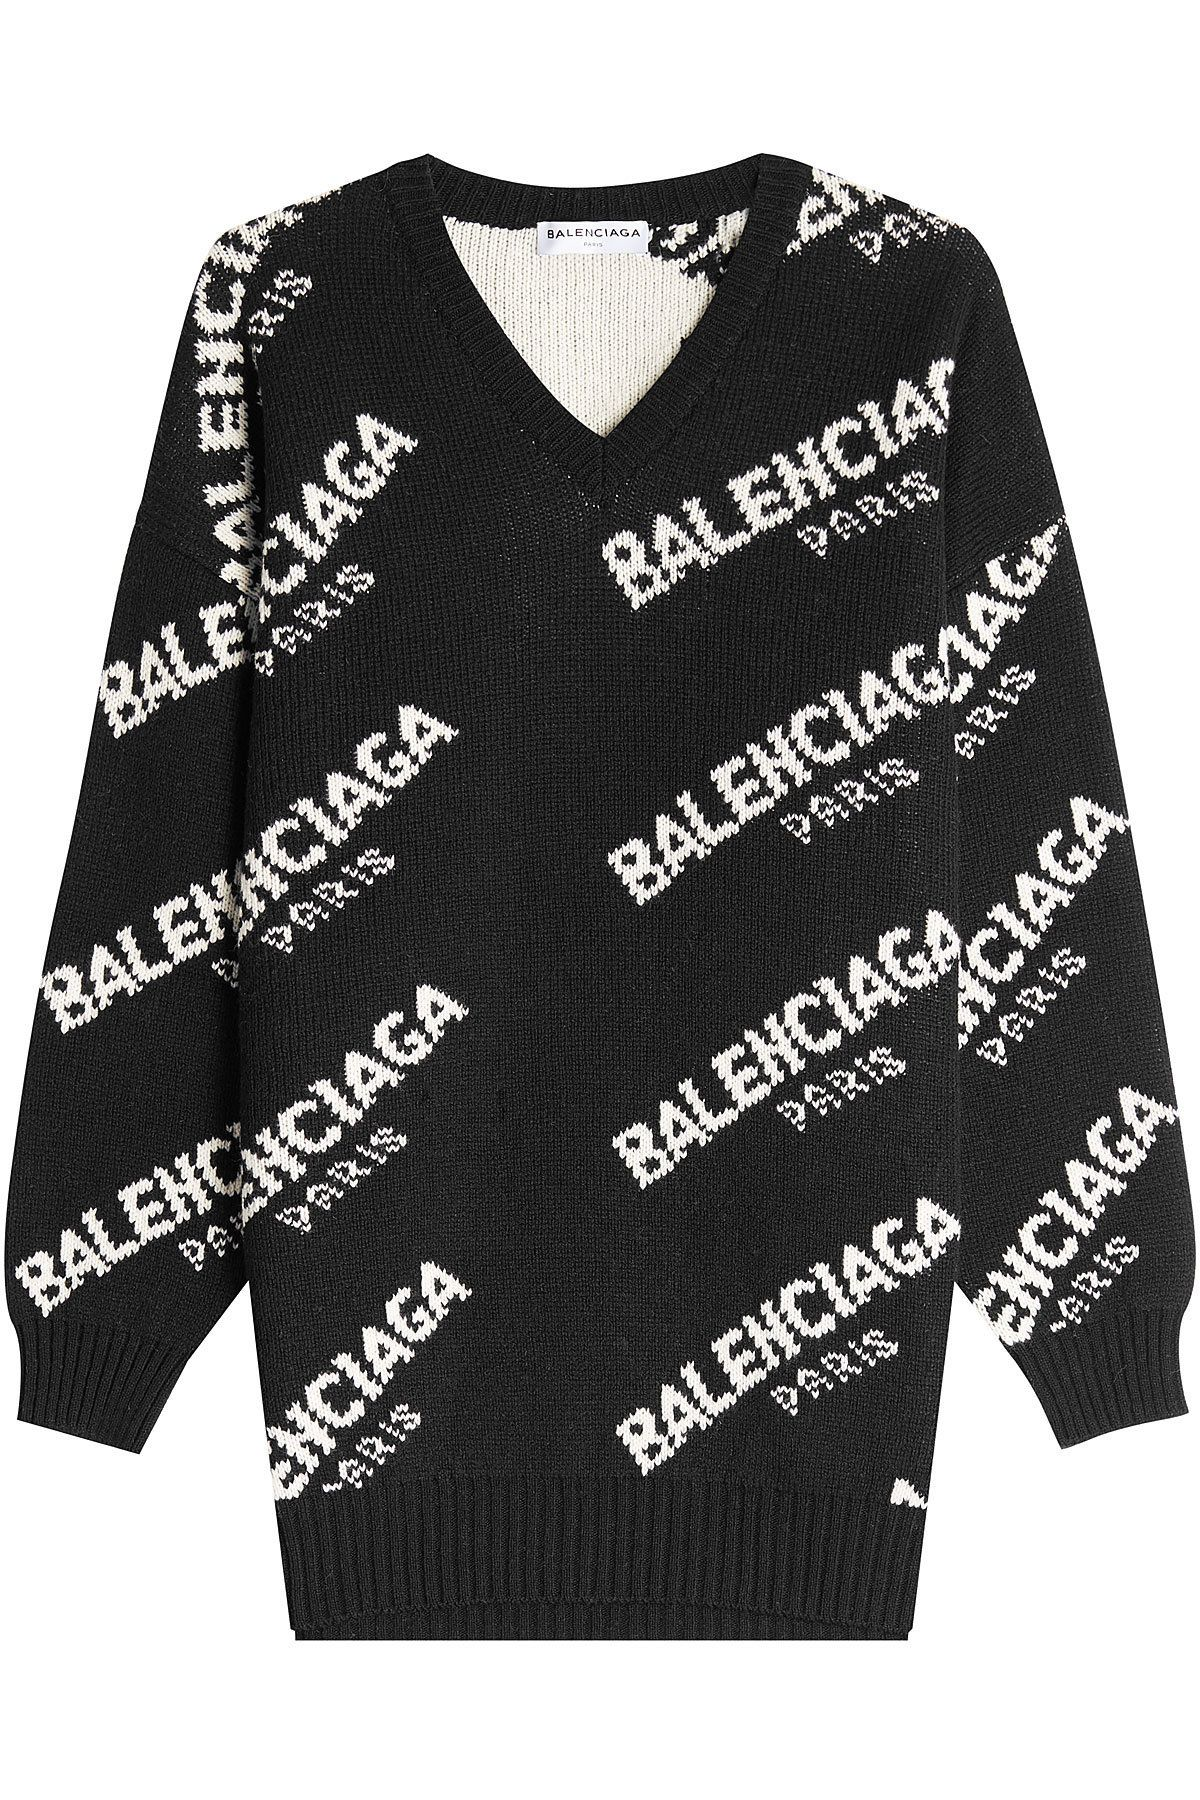 ce2b737940b9 BALENCIAGA JACQUARD LOGO PULLOVER WITH VIRGIN WOOL AND CAMEL. #balenciaga  #cloth #